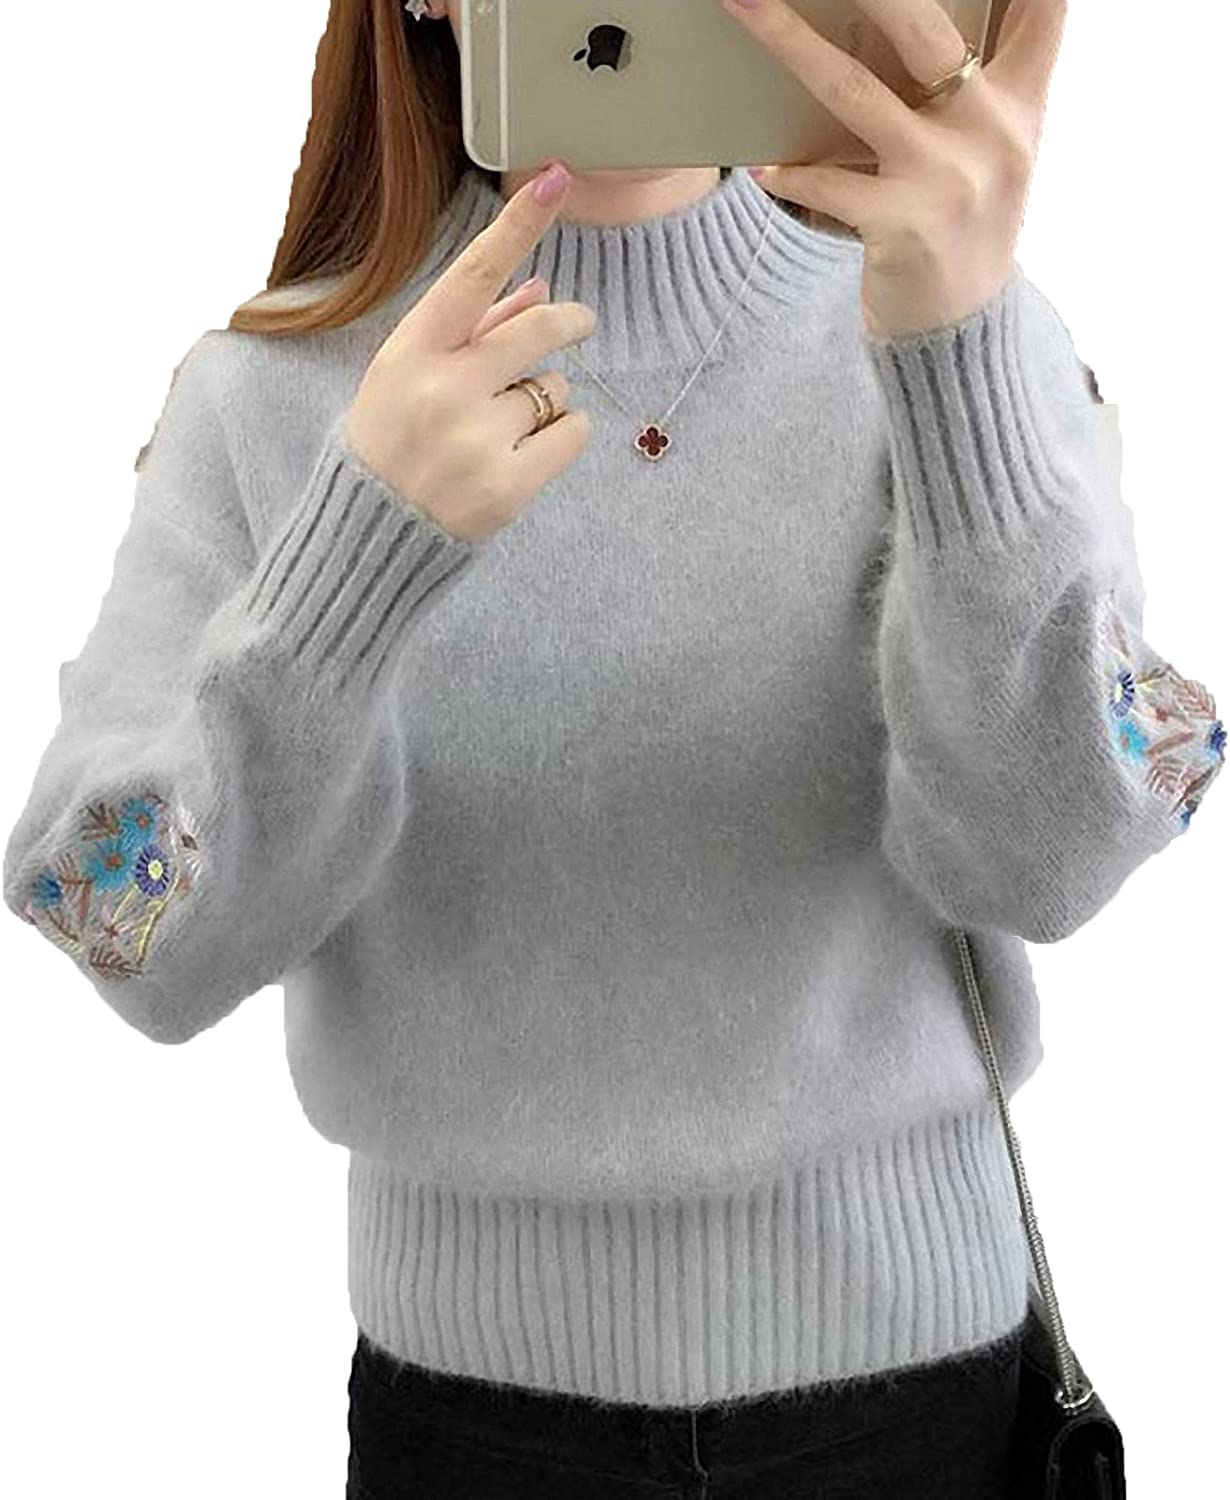 Barsly Women Knitted Sweater Floral Embroidery Thick Sweater Pullovers Autumn Winter Long Sleeve Turtleneck Sweaters